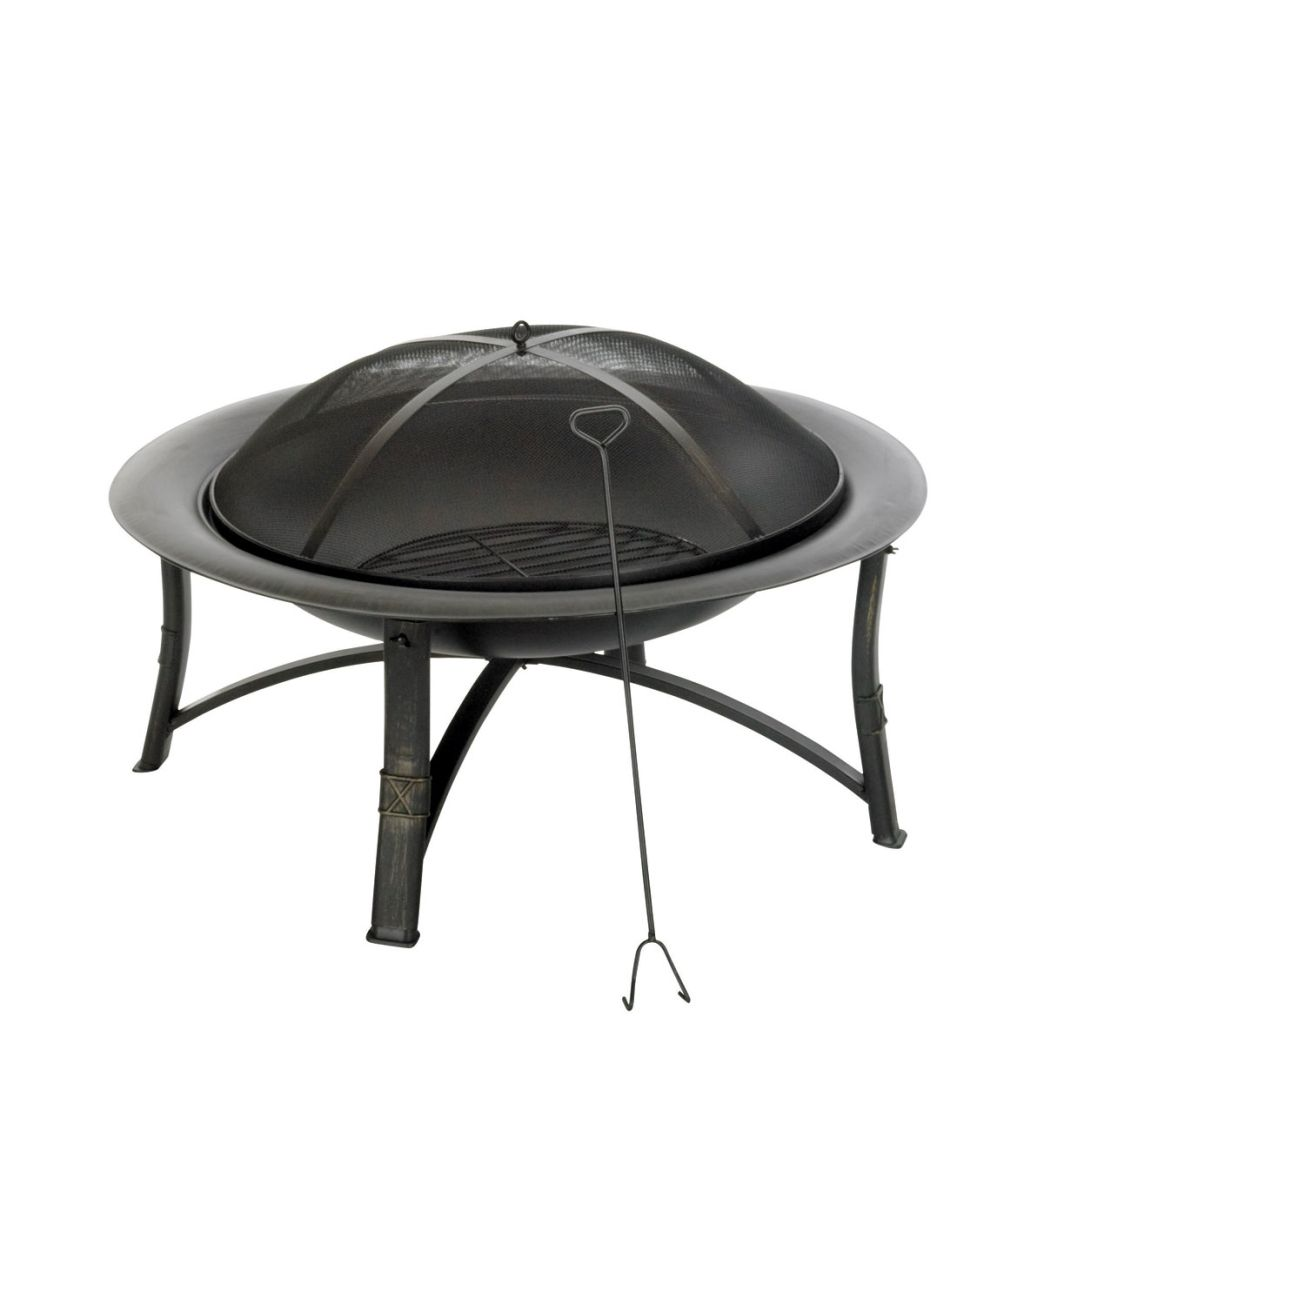 35 in Round Fire Pit from Living Accents at Ace Hardware ... on Ace Hardware Fire Pit  id=69767